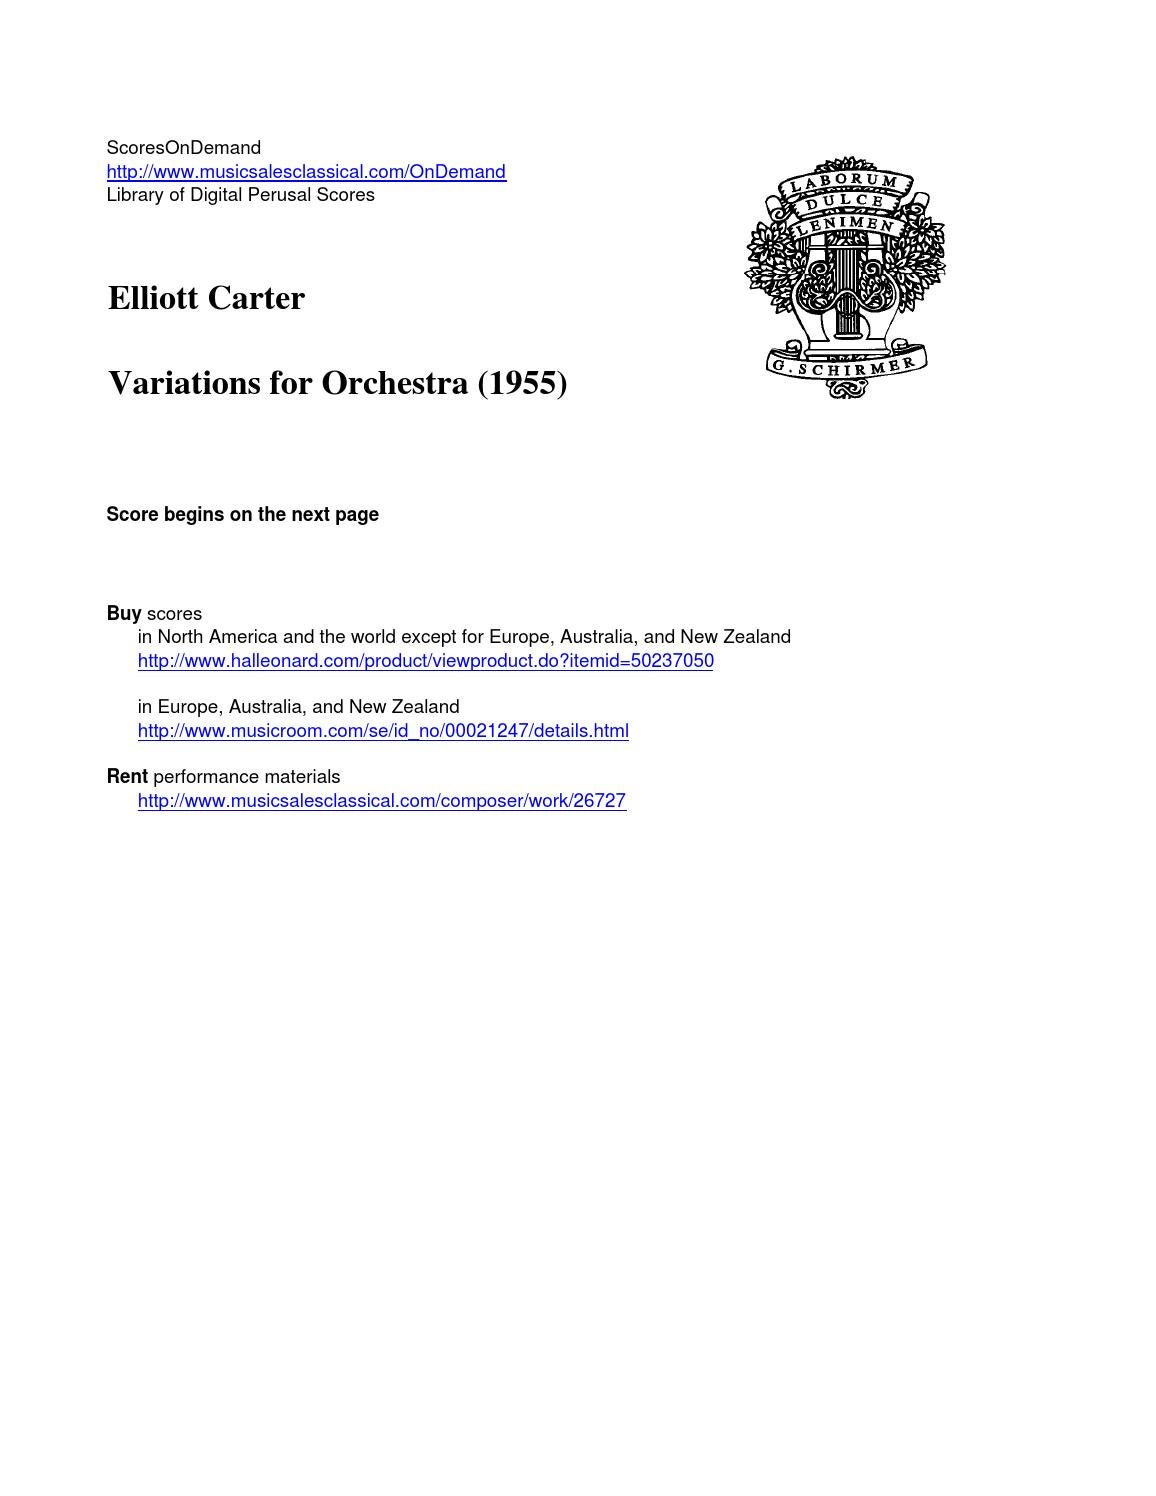 carter variations for orchestra by scoresondemand issuu